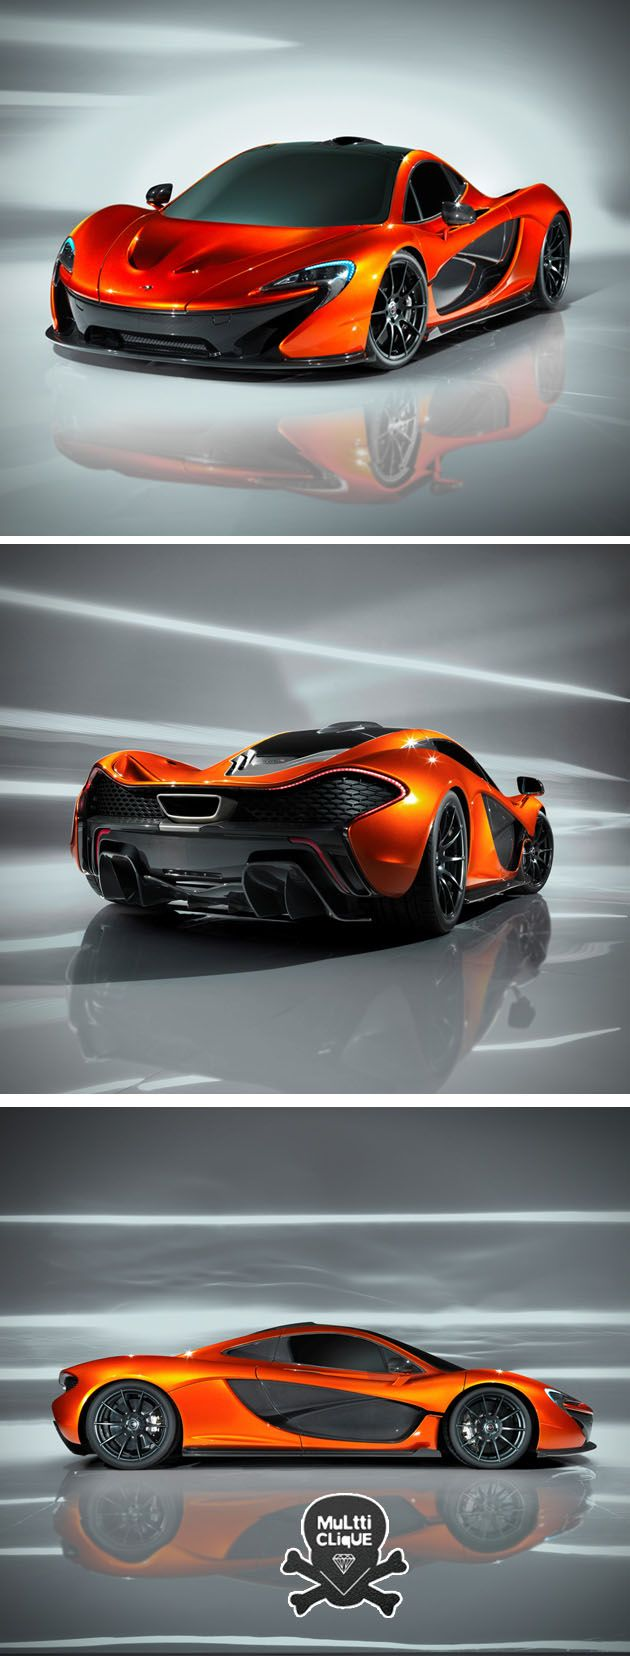 Luxury Car Rental Phila Limo Car Service Phila Private Jets Super Cars Super Car Bugatti Mclaren P1